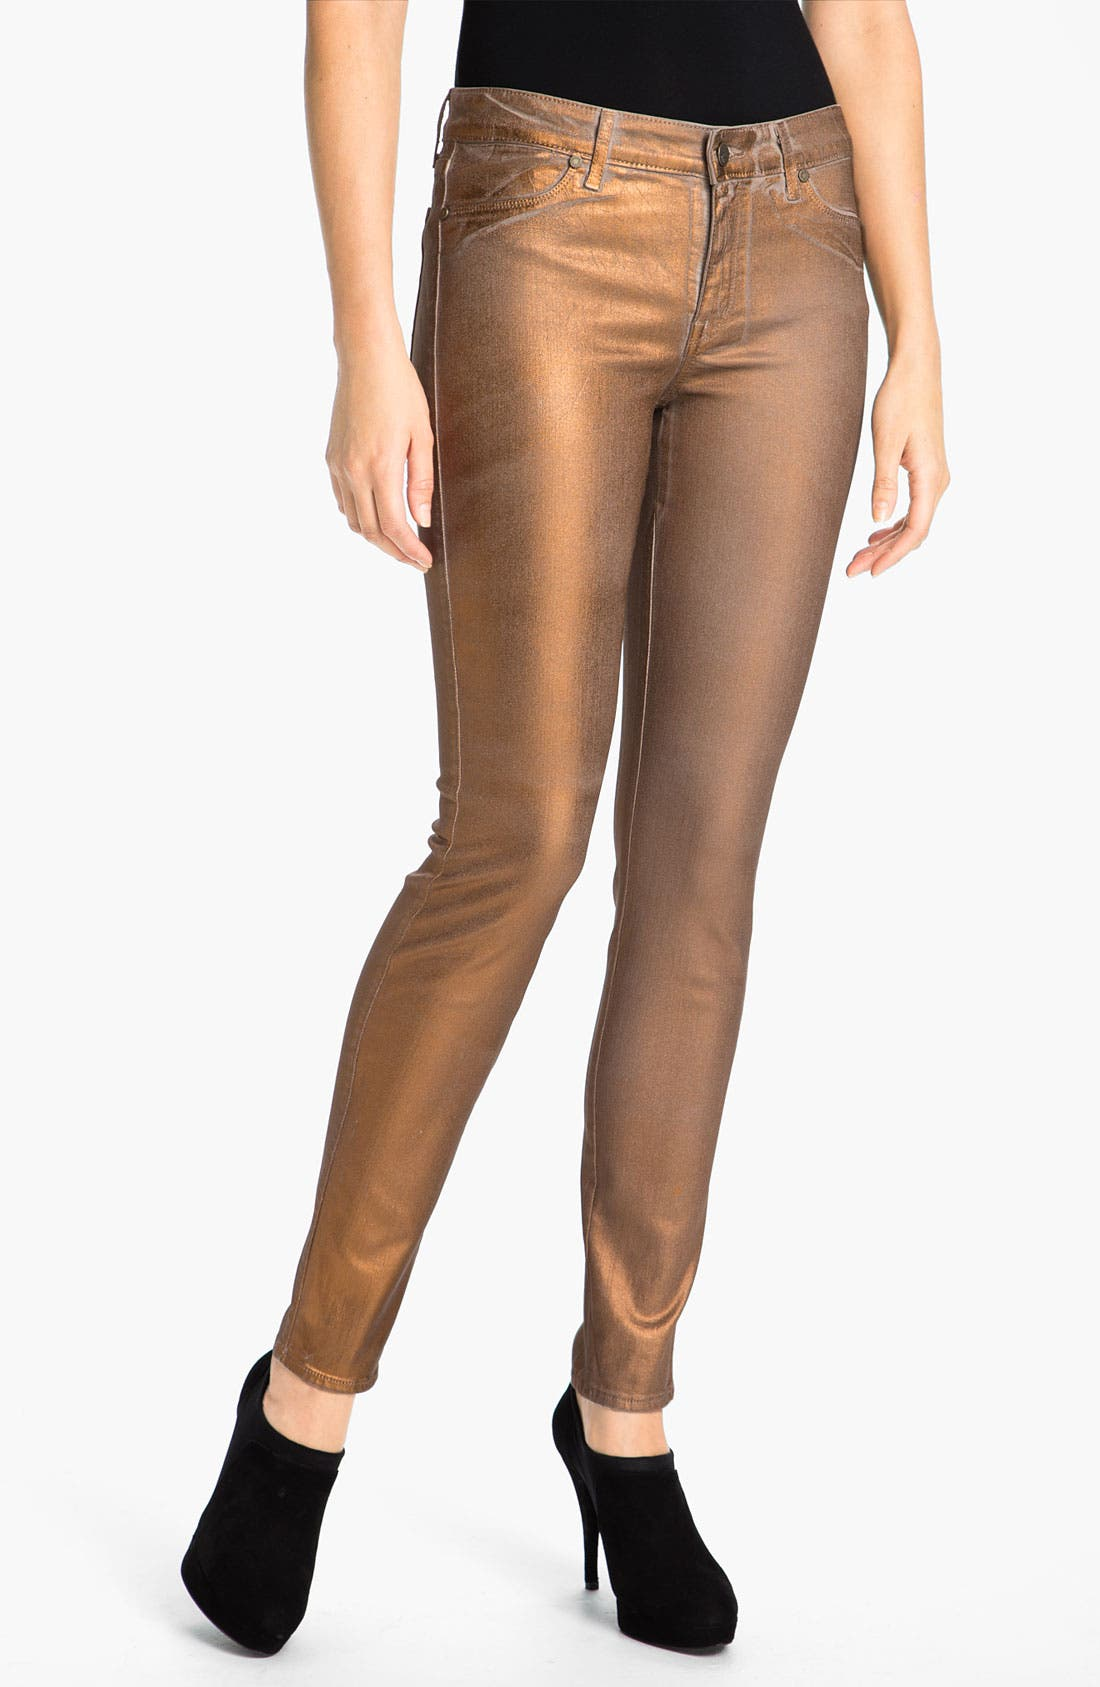 Alternate Image 1 Selected - CJ by Cookie Johnson 'Joy' Stretch Skinny Jeans (Champagne Dust)